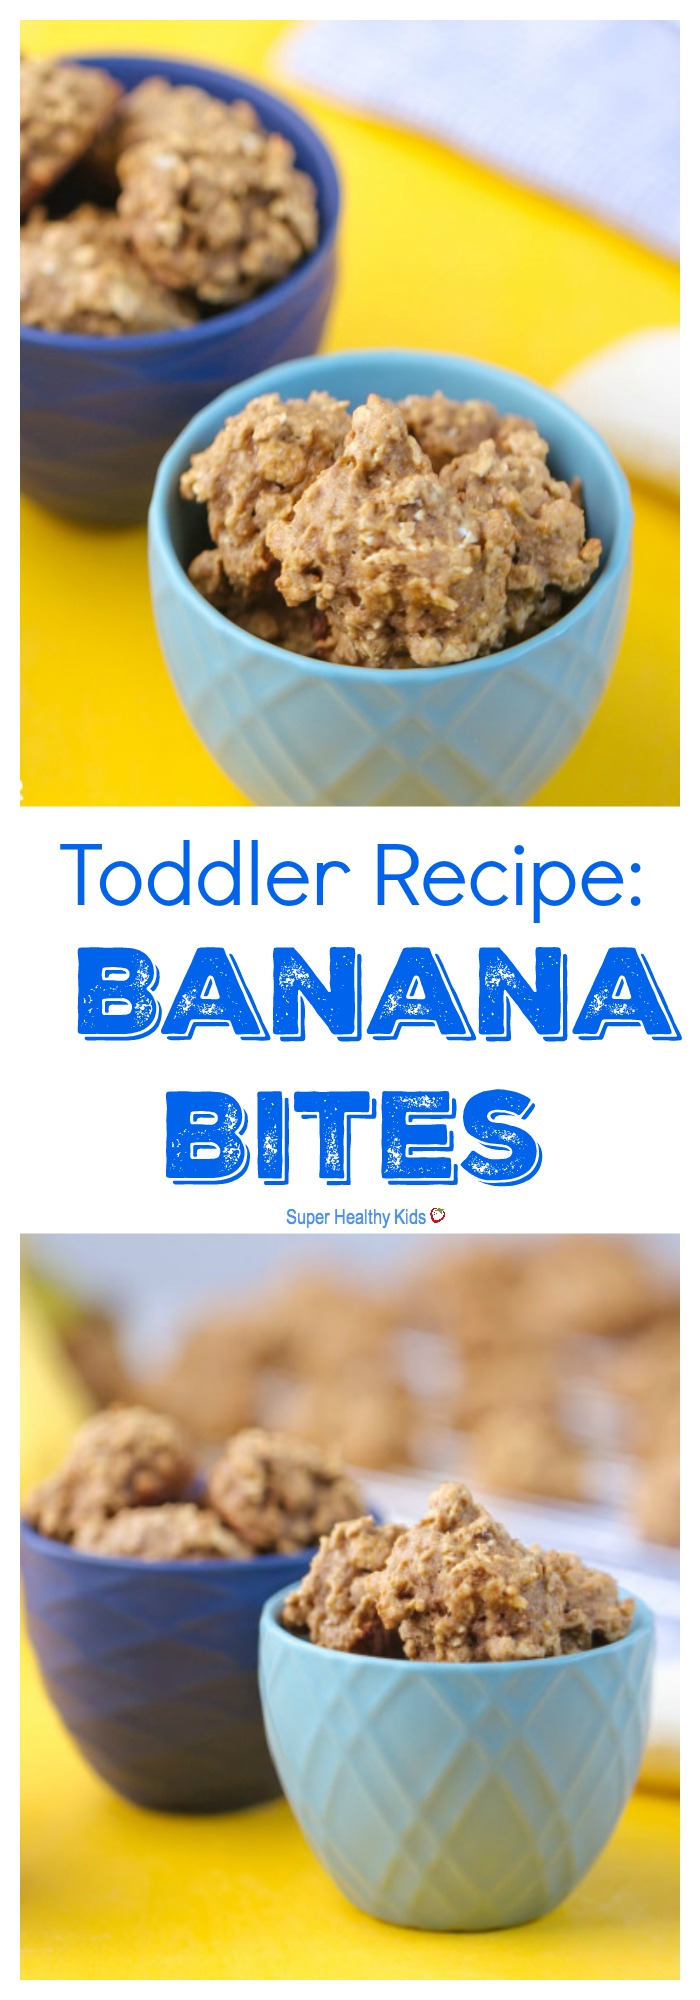 Toddler Recipe: Banana Bites | Healthy Ideas for Kids